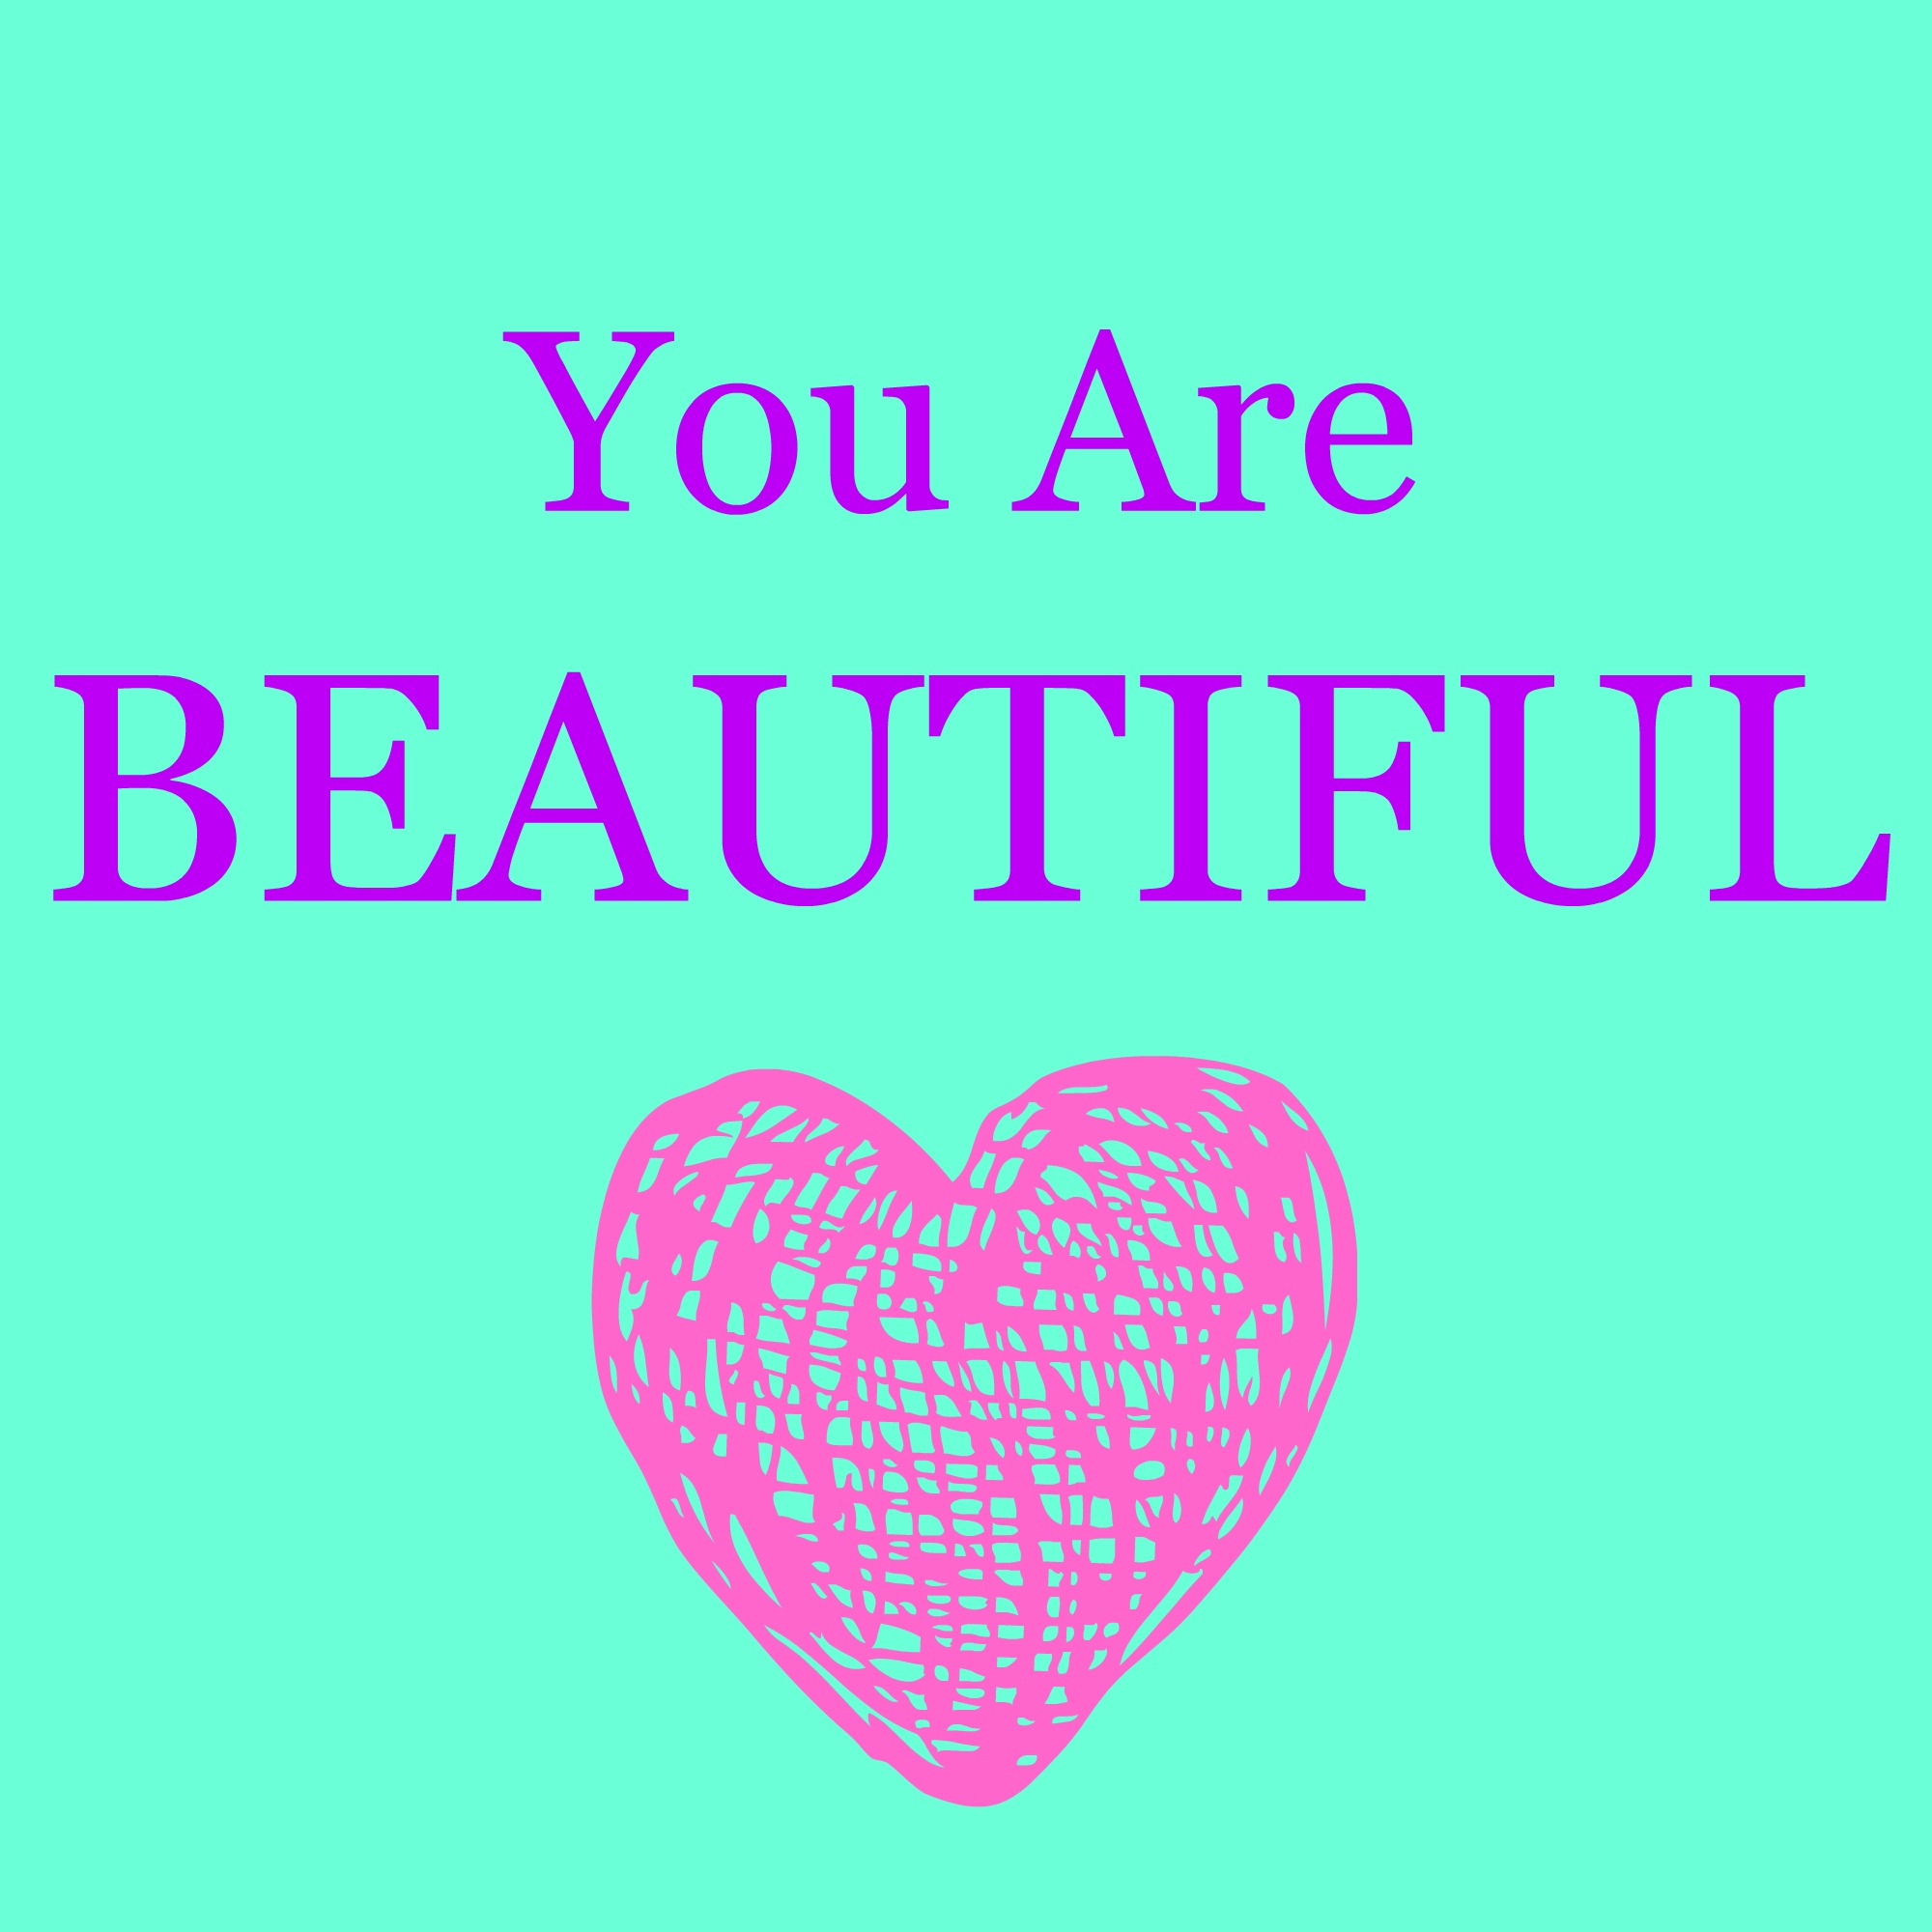 you are beauttiful